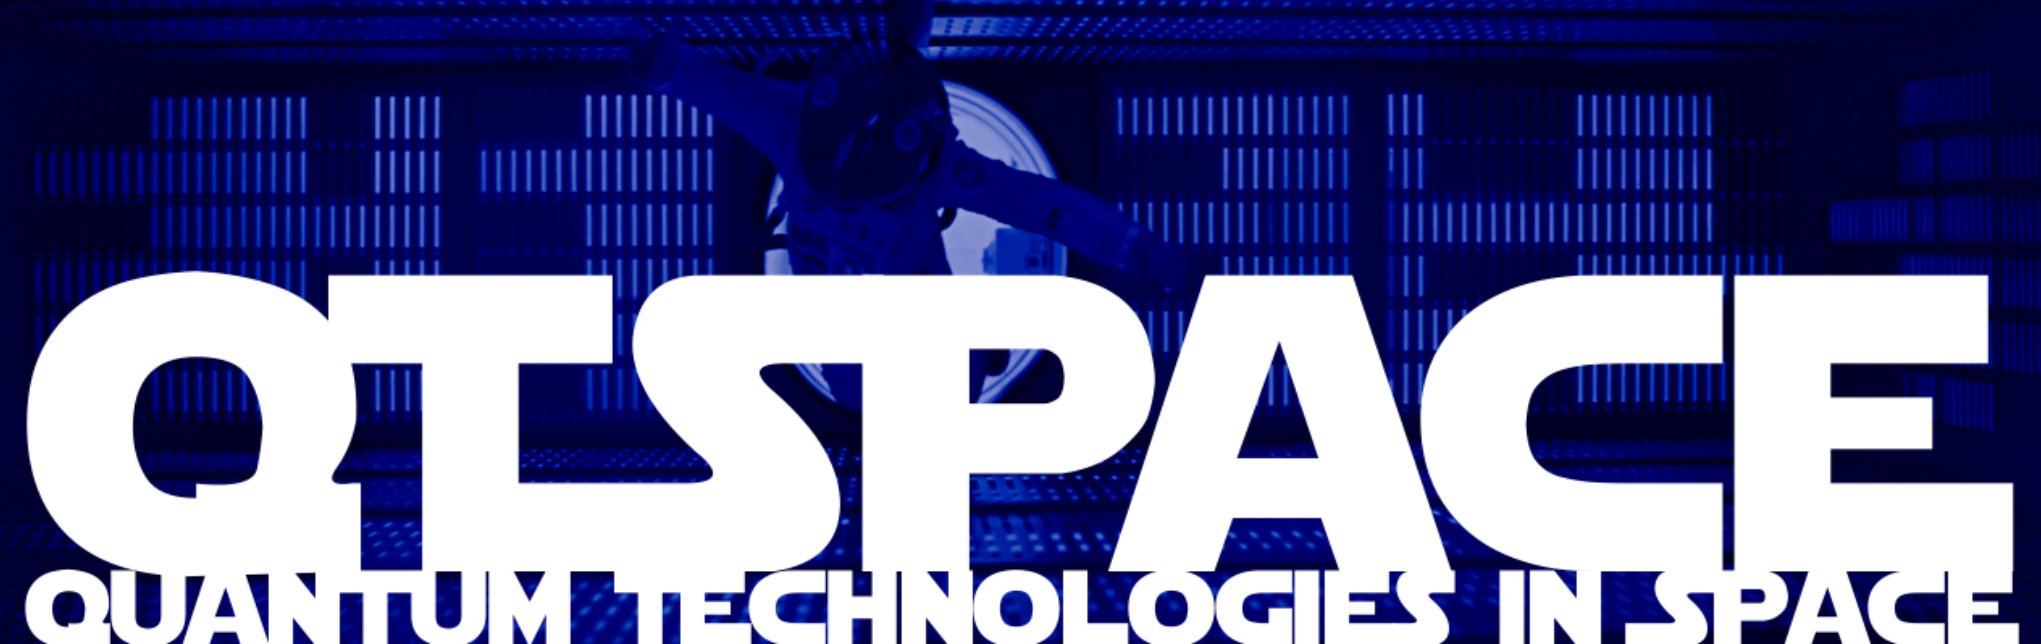 logo-quantum-technologies-in-space